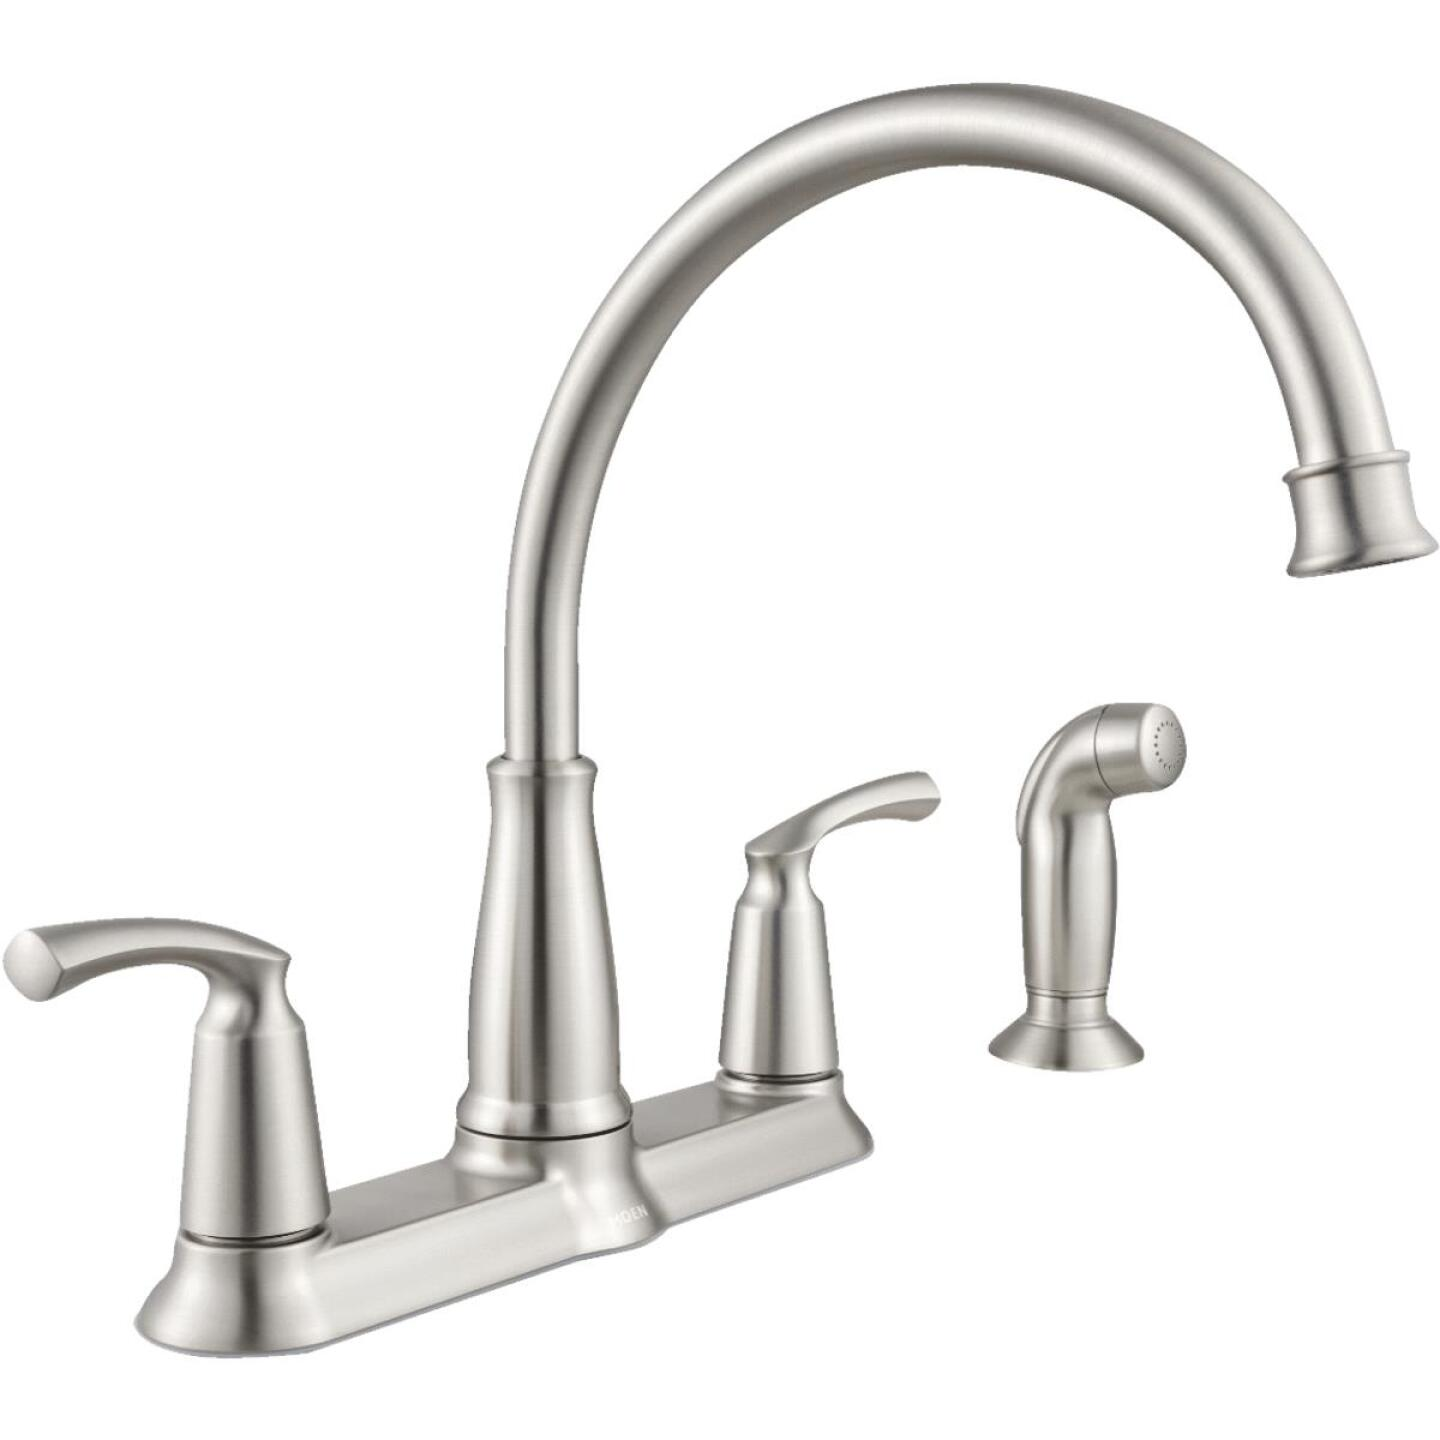 Moen Bexley Dual Handle Lever Kitchen Faucet with Side Spray ...